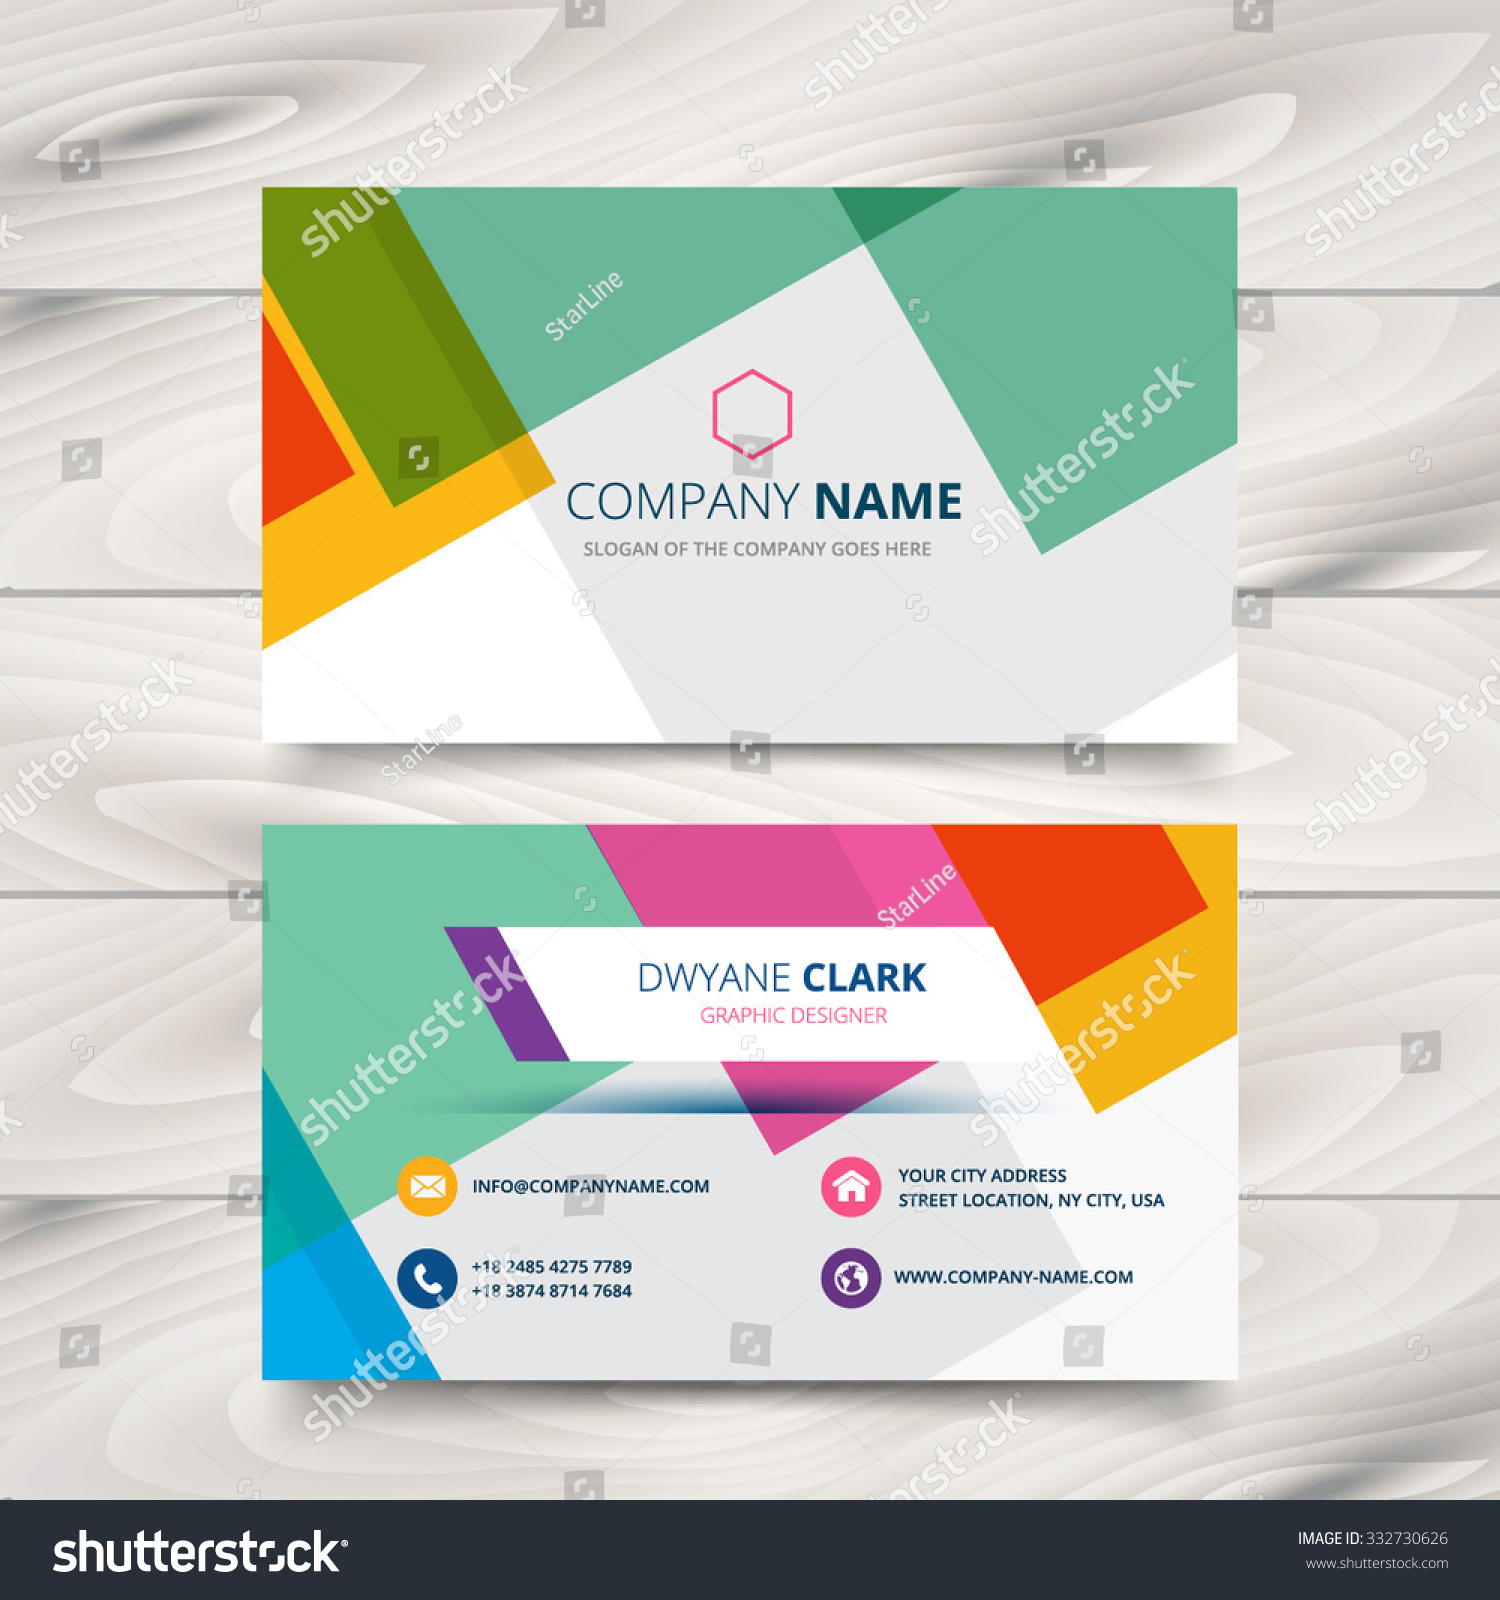 Modern Colorful Business Card Template Design Stock Vector ...